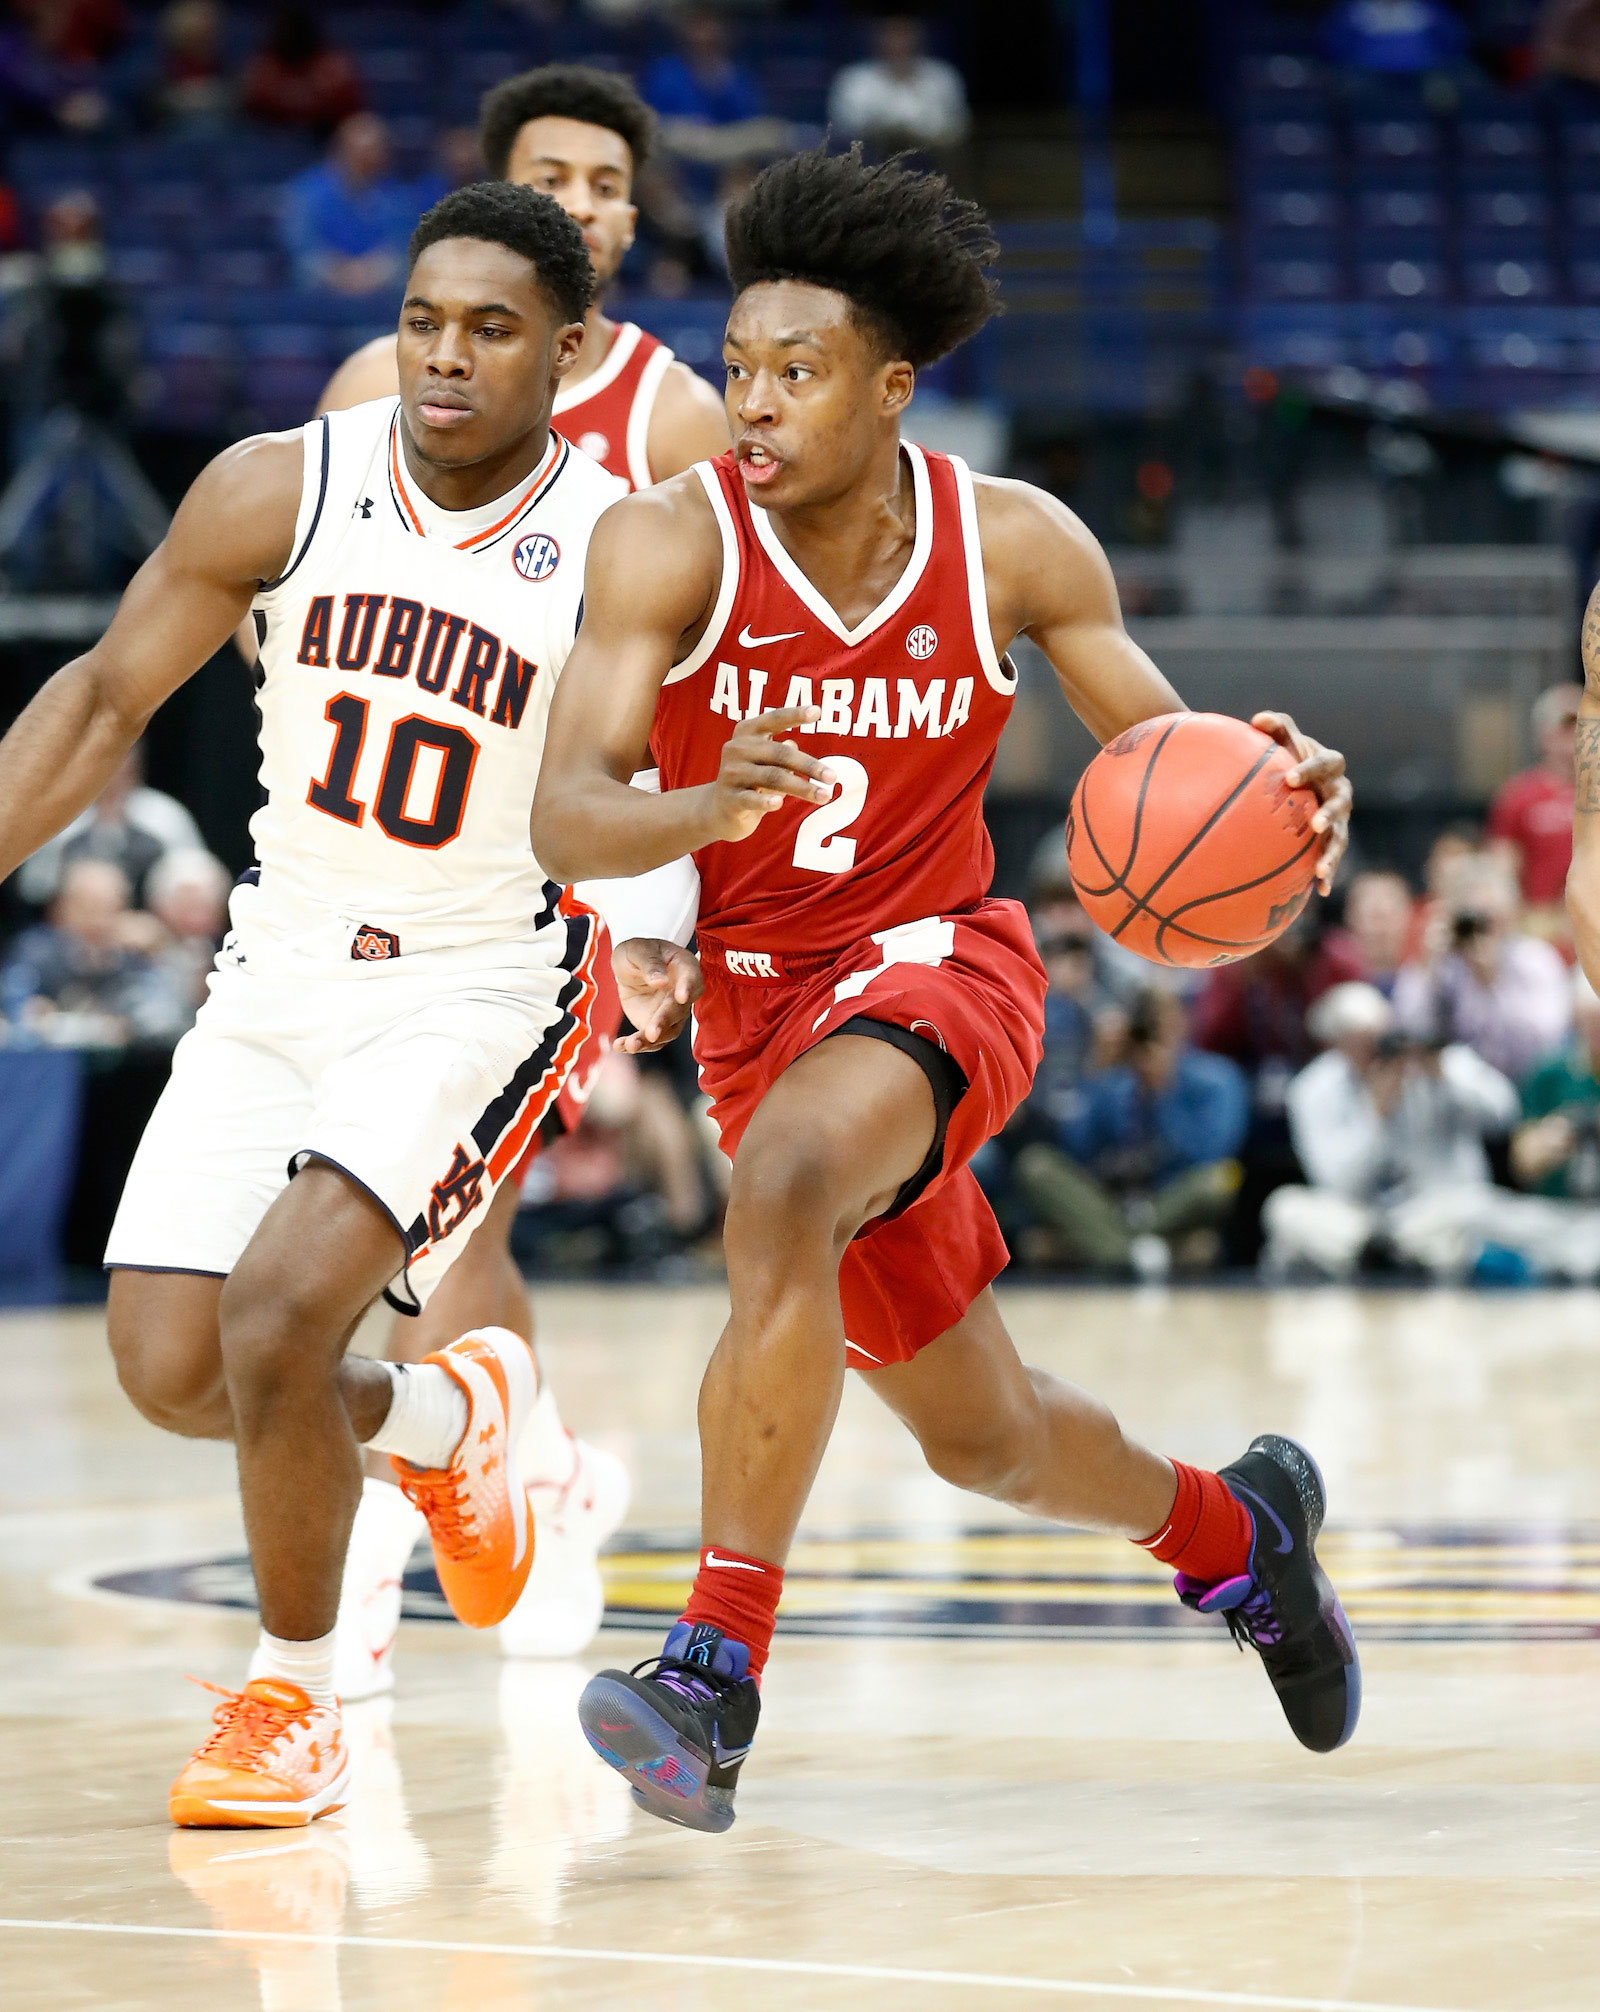 Collin Sexton #2 of the Alabama Crimson Tide dribbles the ball against the Auburn Tigers during the quarterfinals round of the 2018 SEC Basketball Tournament at Scottrade Center on March 9, 2018 in St Louis, Missouri.